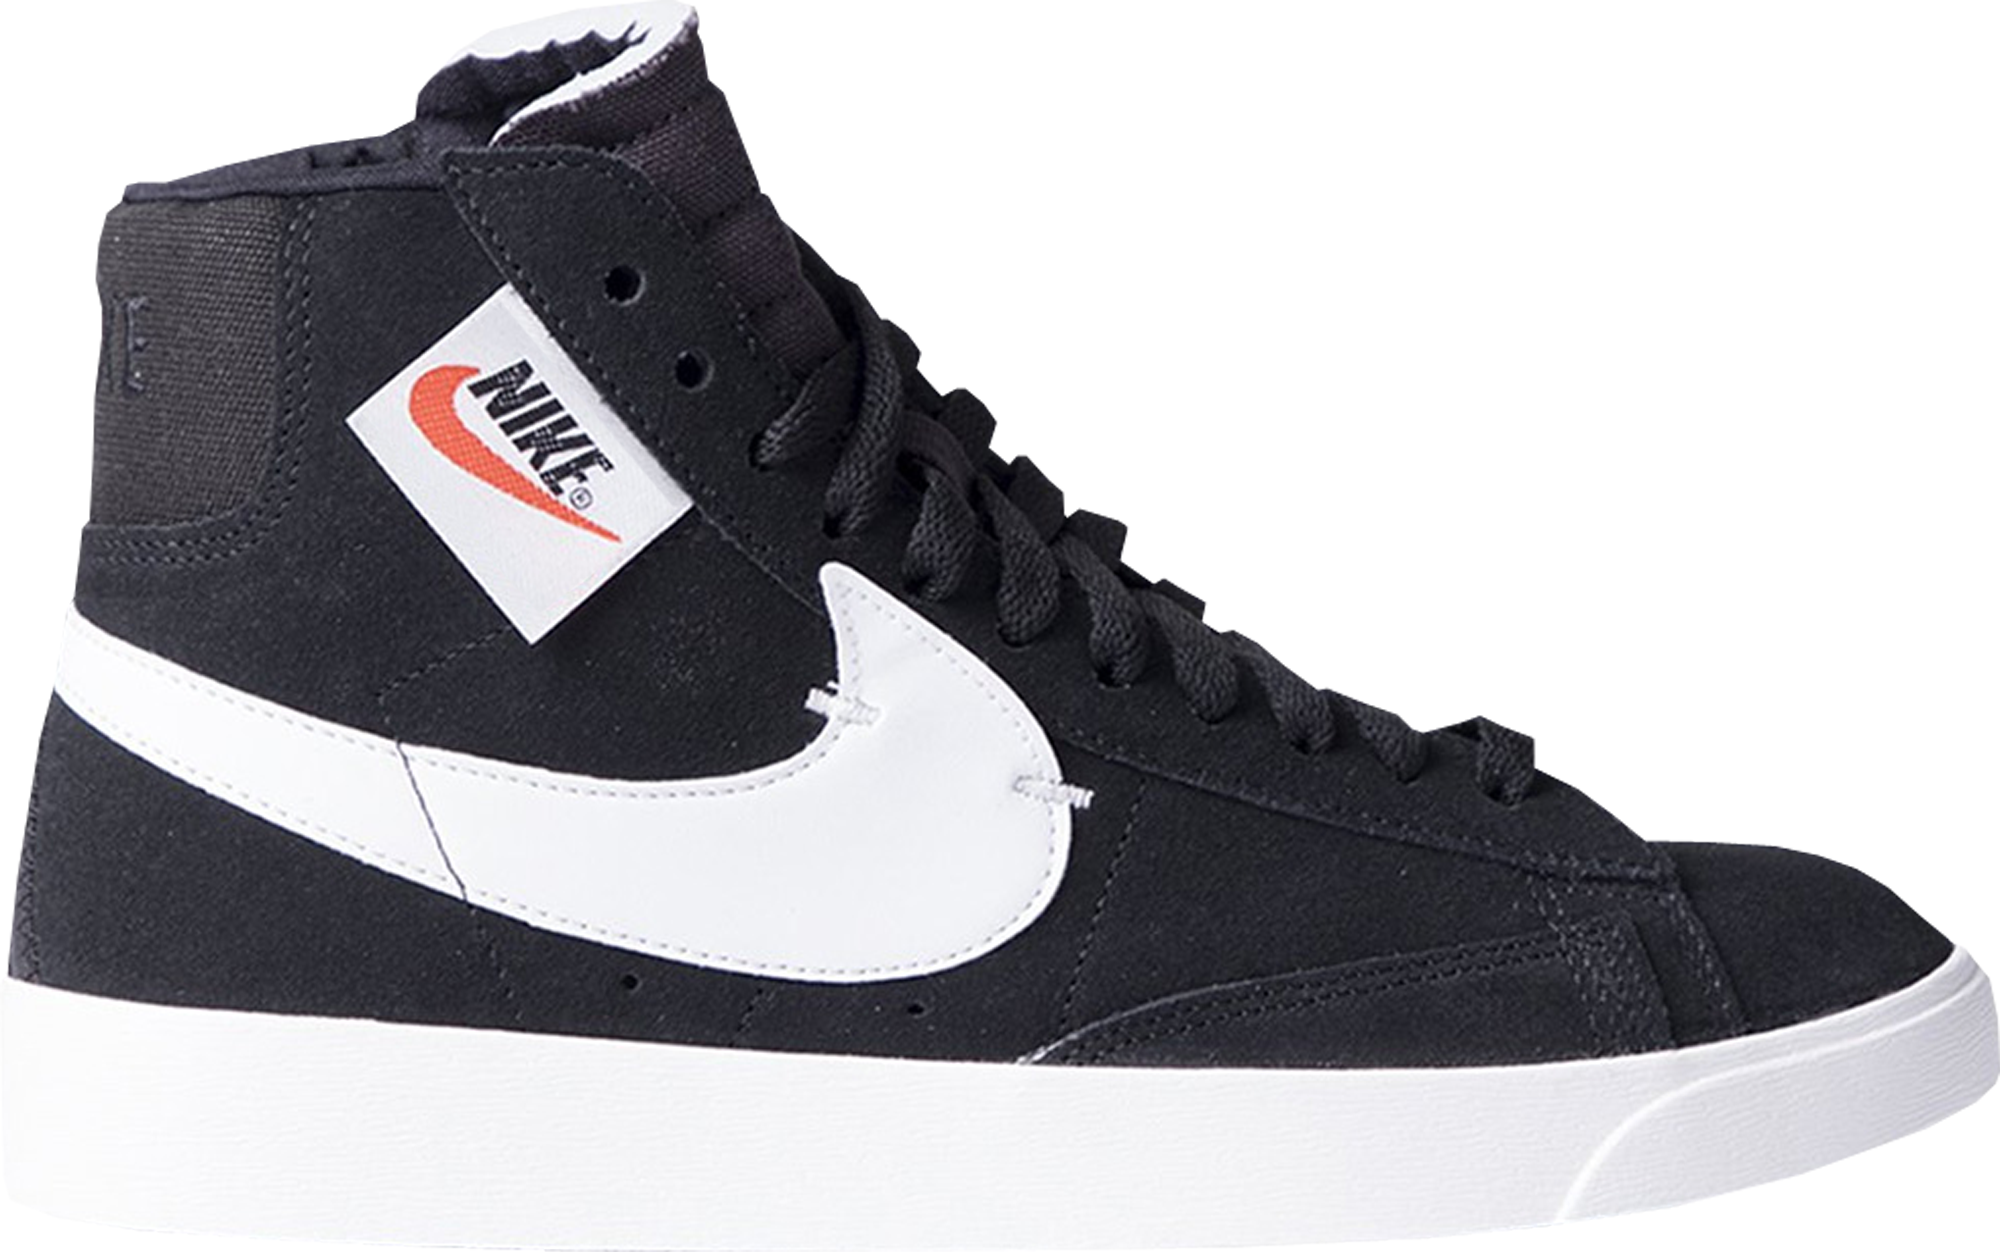 Nike Blazer Mid Rebel Black White (W)